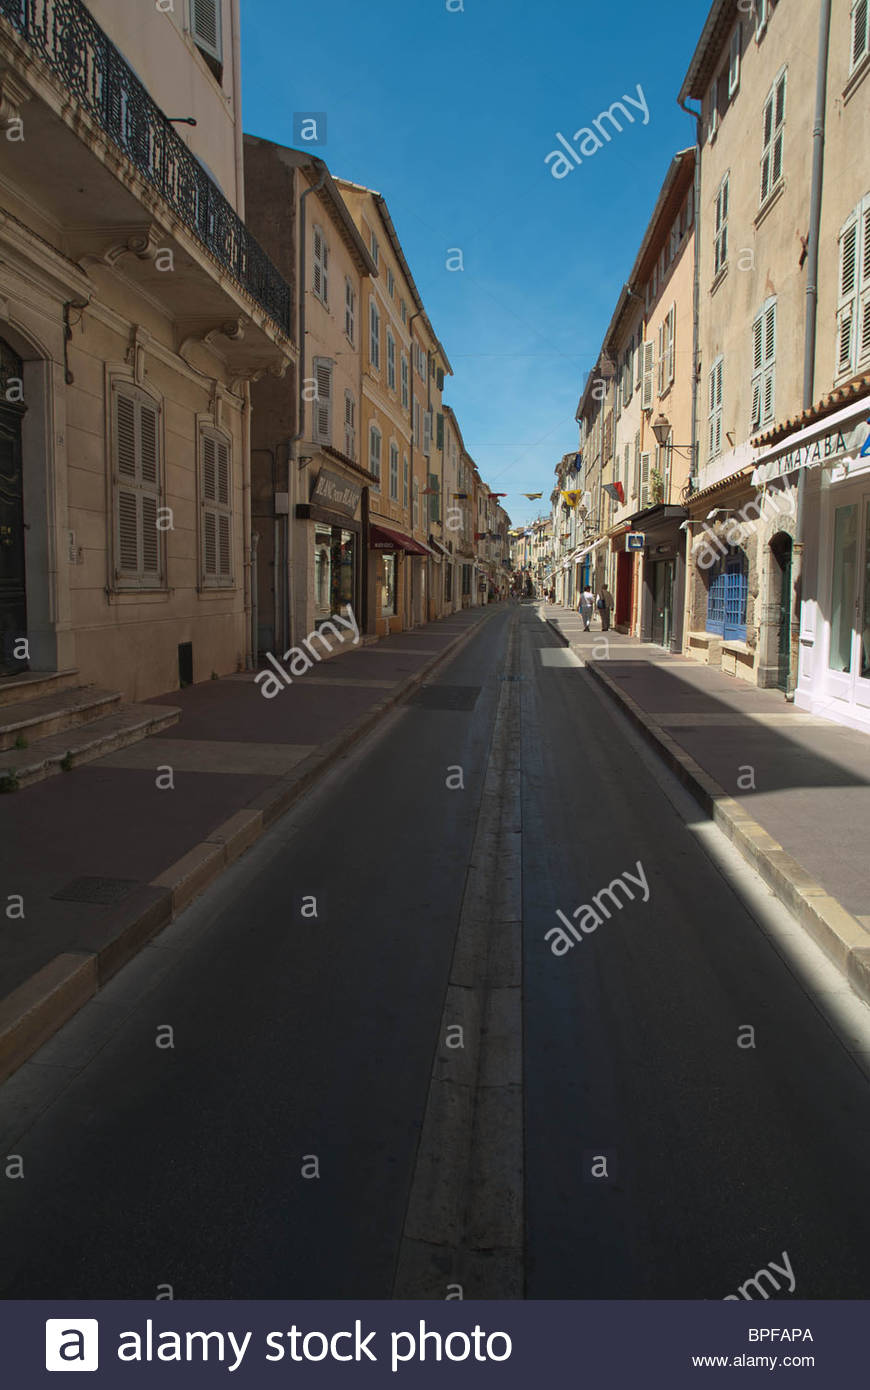 city-street-at-mid-day-in-the-village-of-st-tropez-france-BPFAPA.jpg